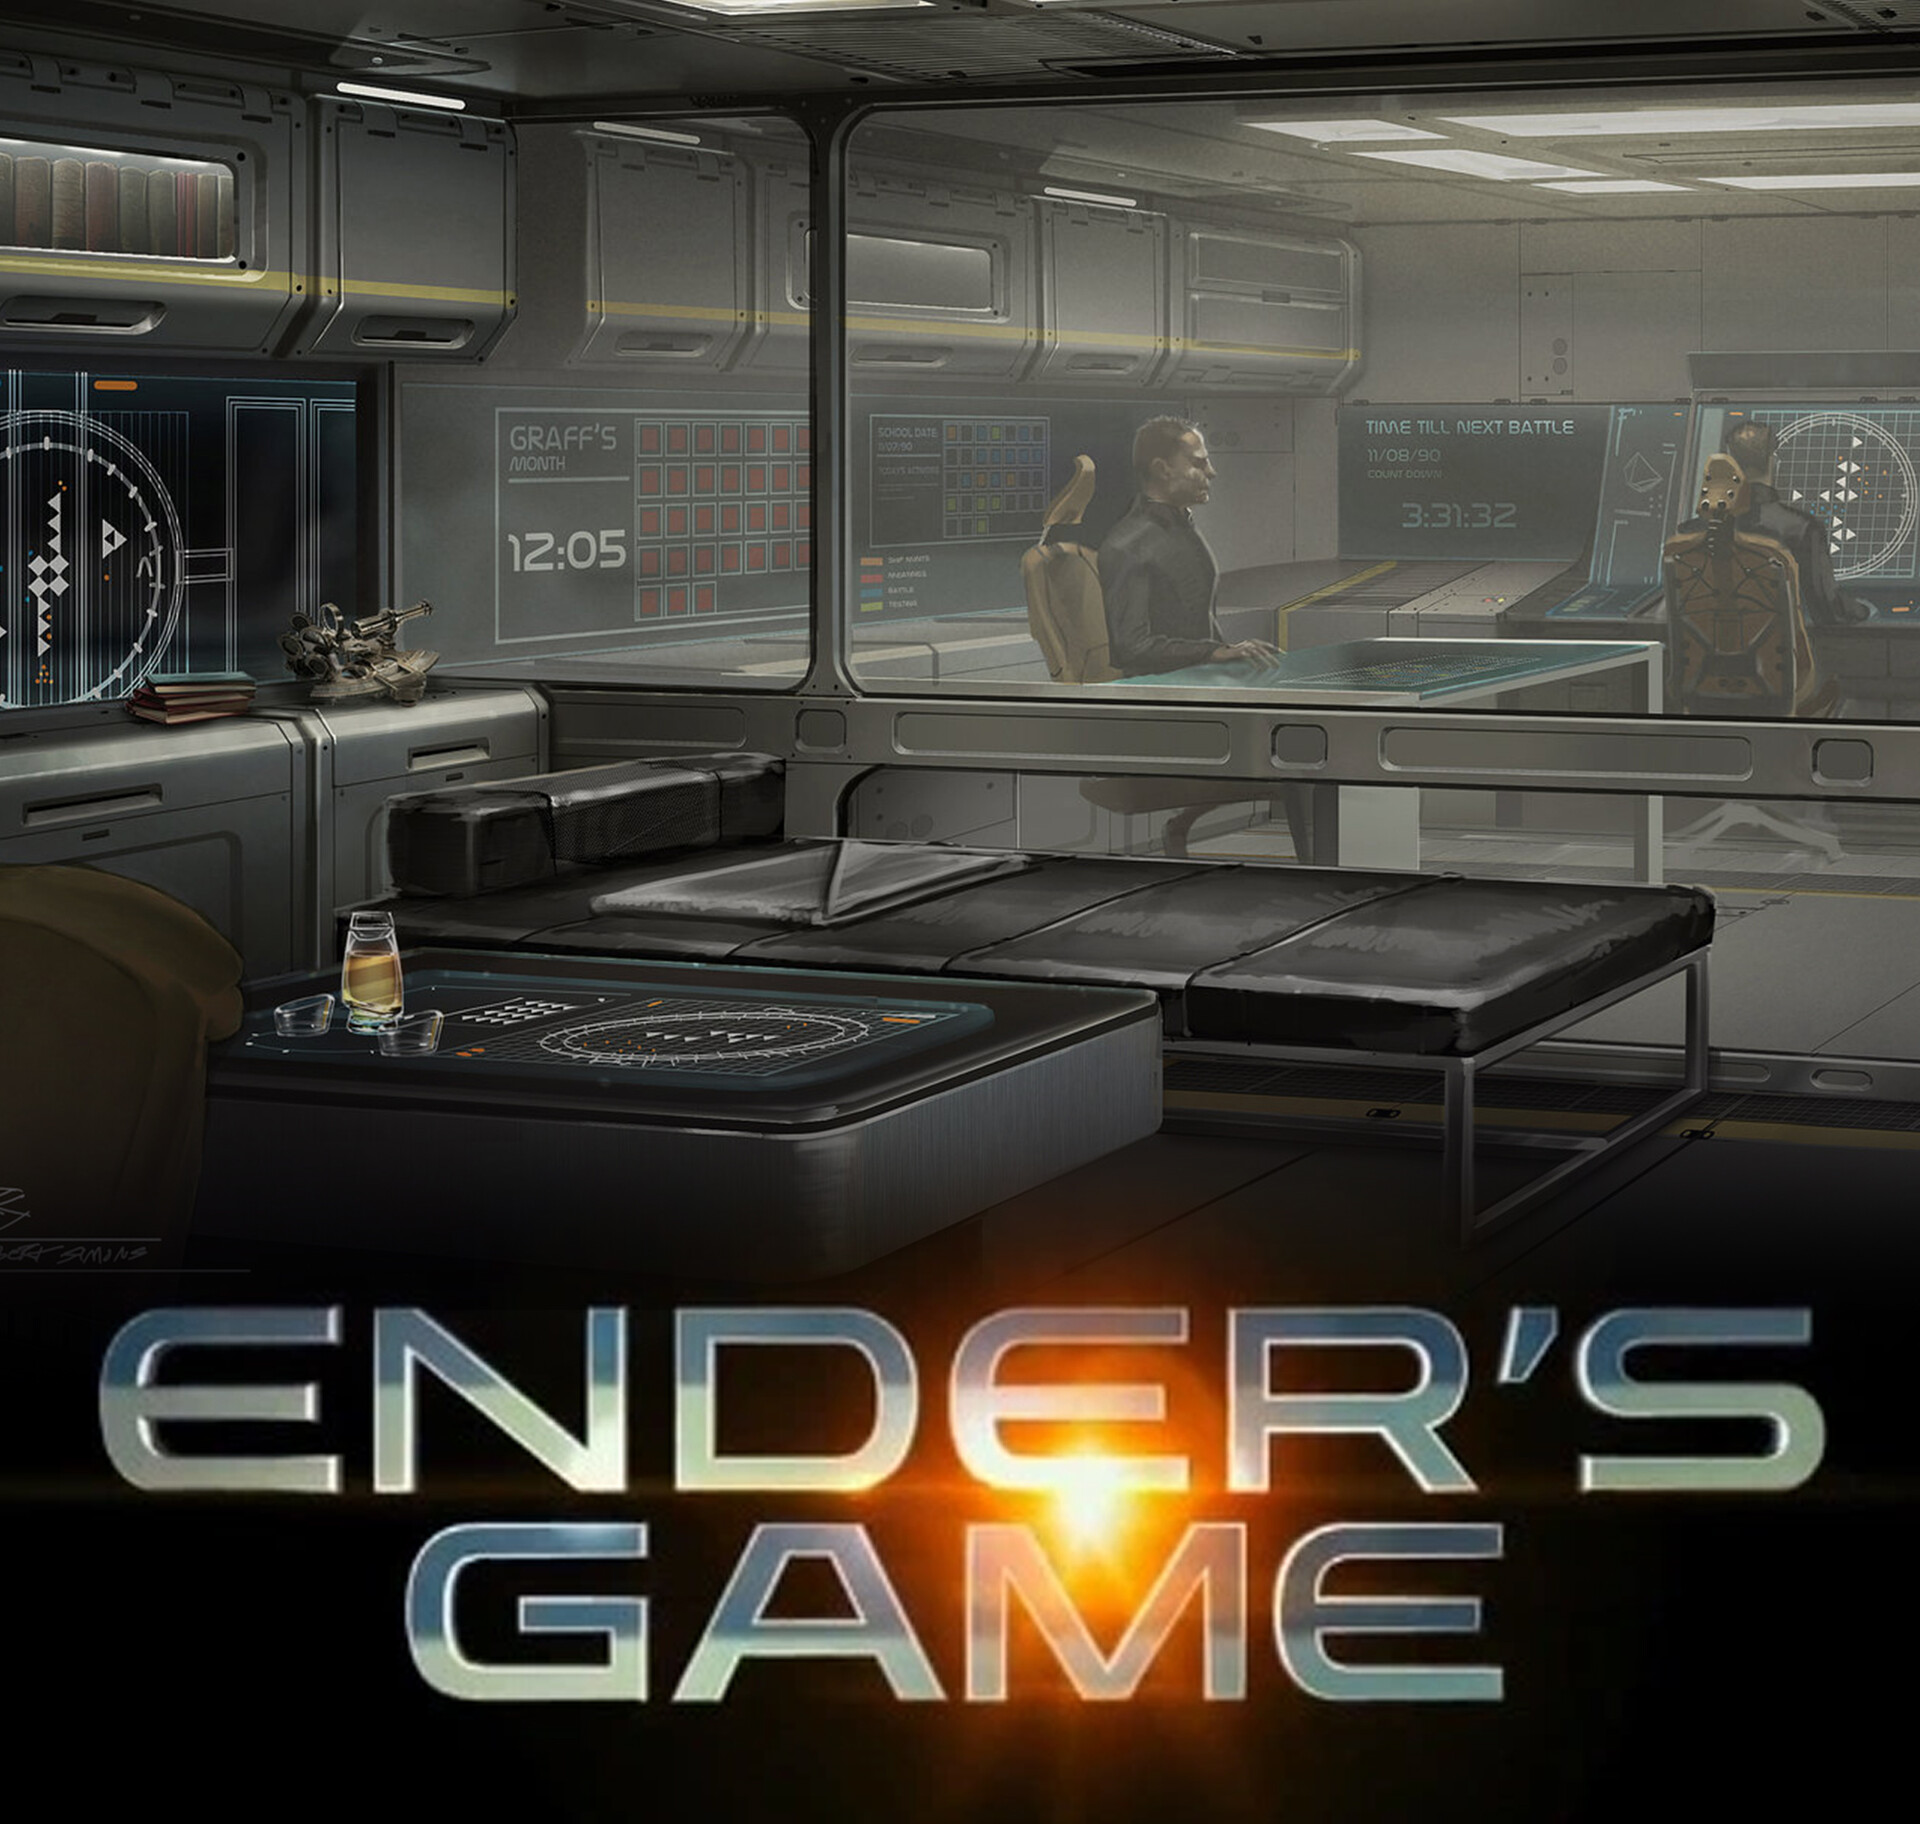 Gadget-Bot Productions - Ender's Game - Graff's office view 2